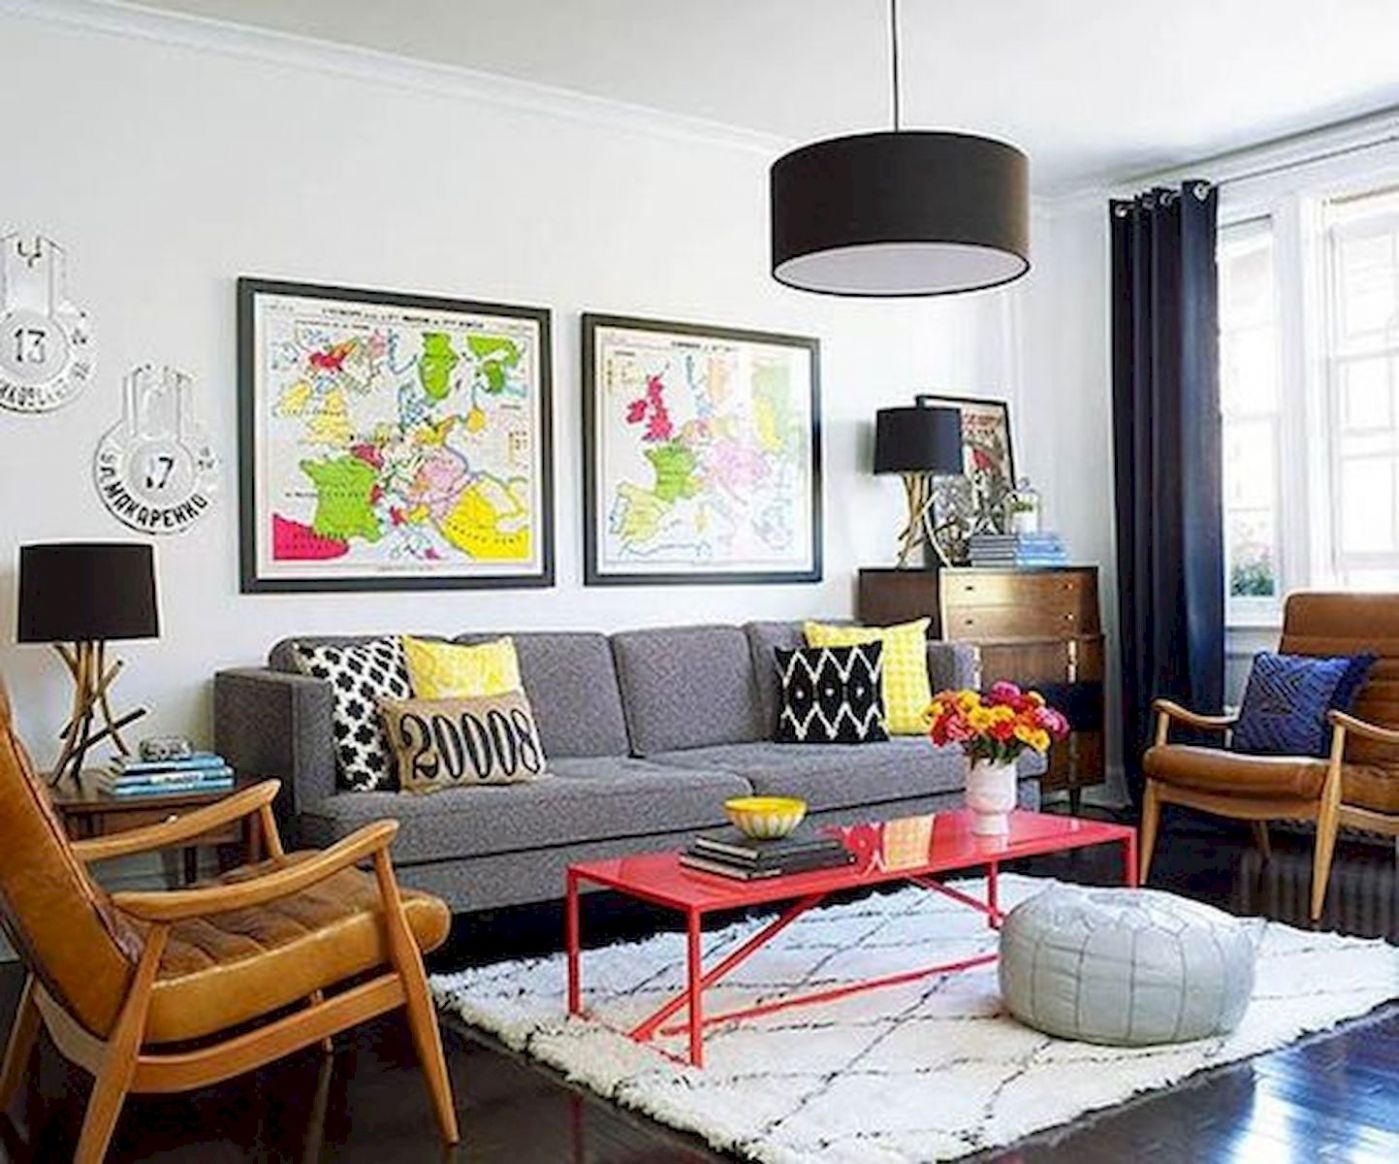 9 Amazing Small Apartment Decorating Ideas on a Budget – 9DECOR - apartment decorating ideas for young adults